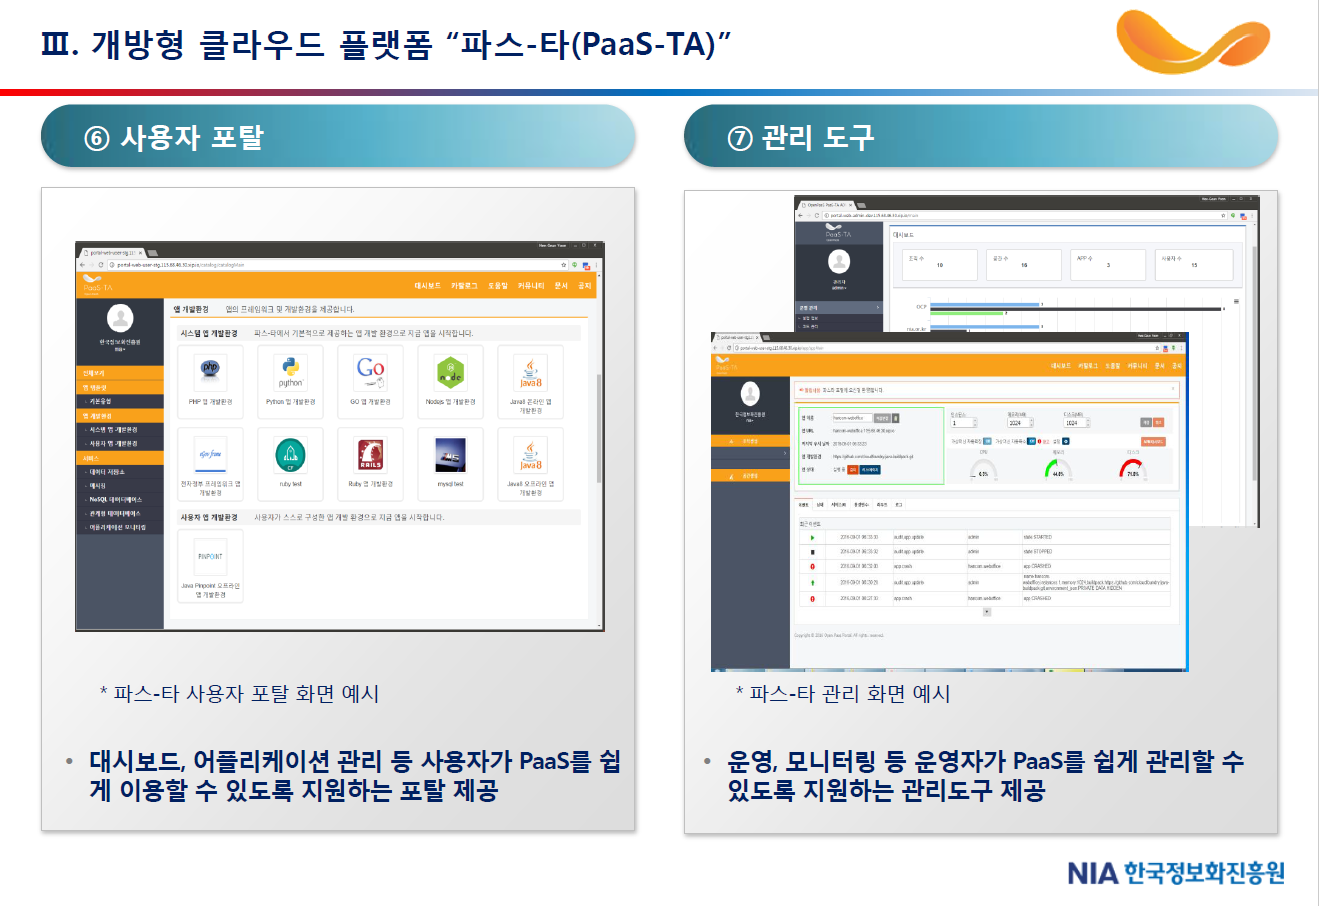 South Korea-PaaS-TA-User-Portal